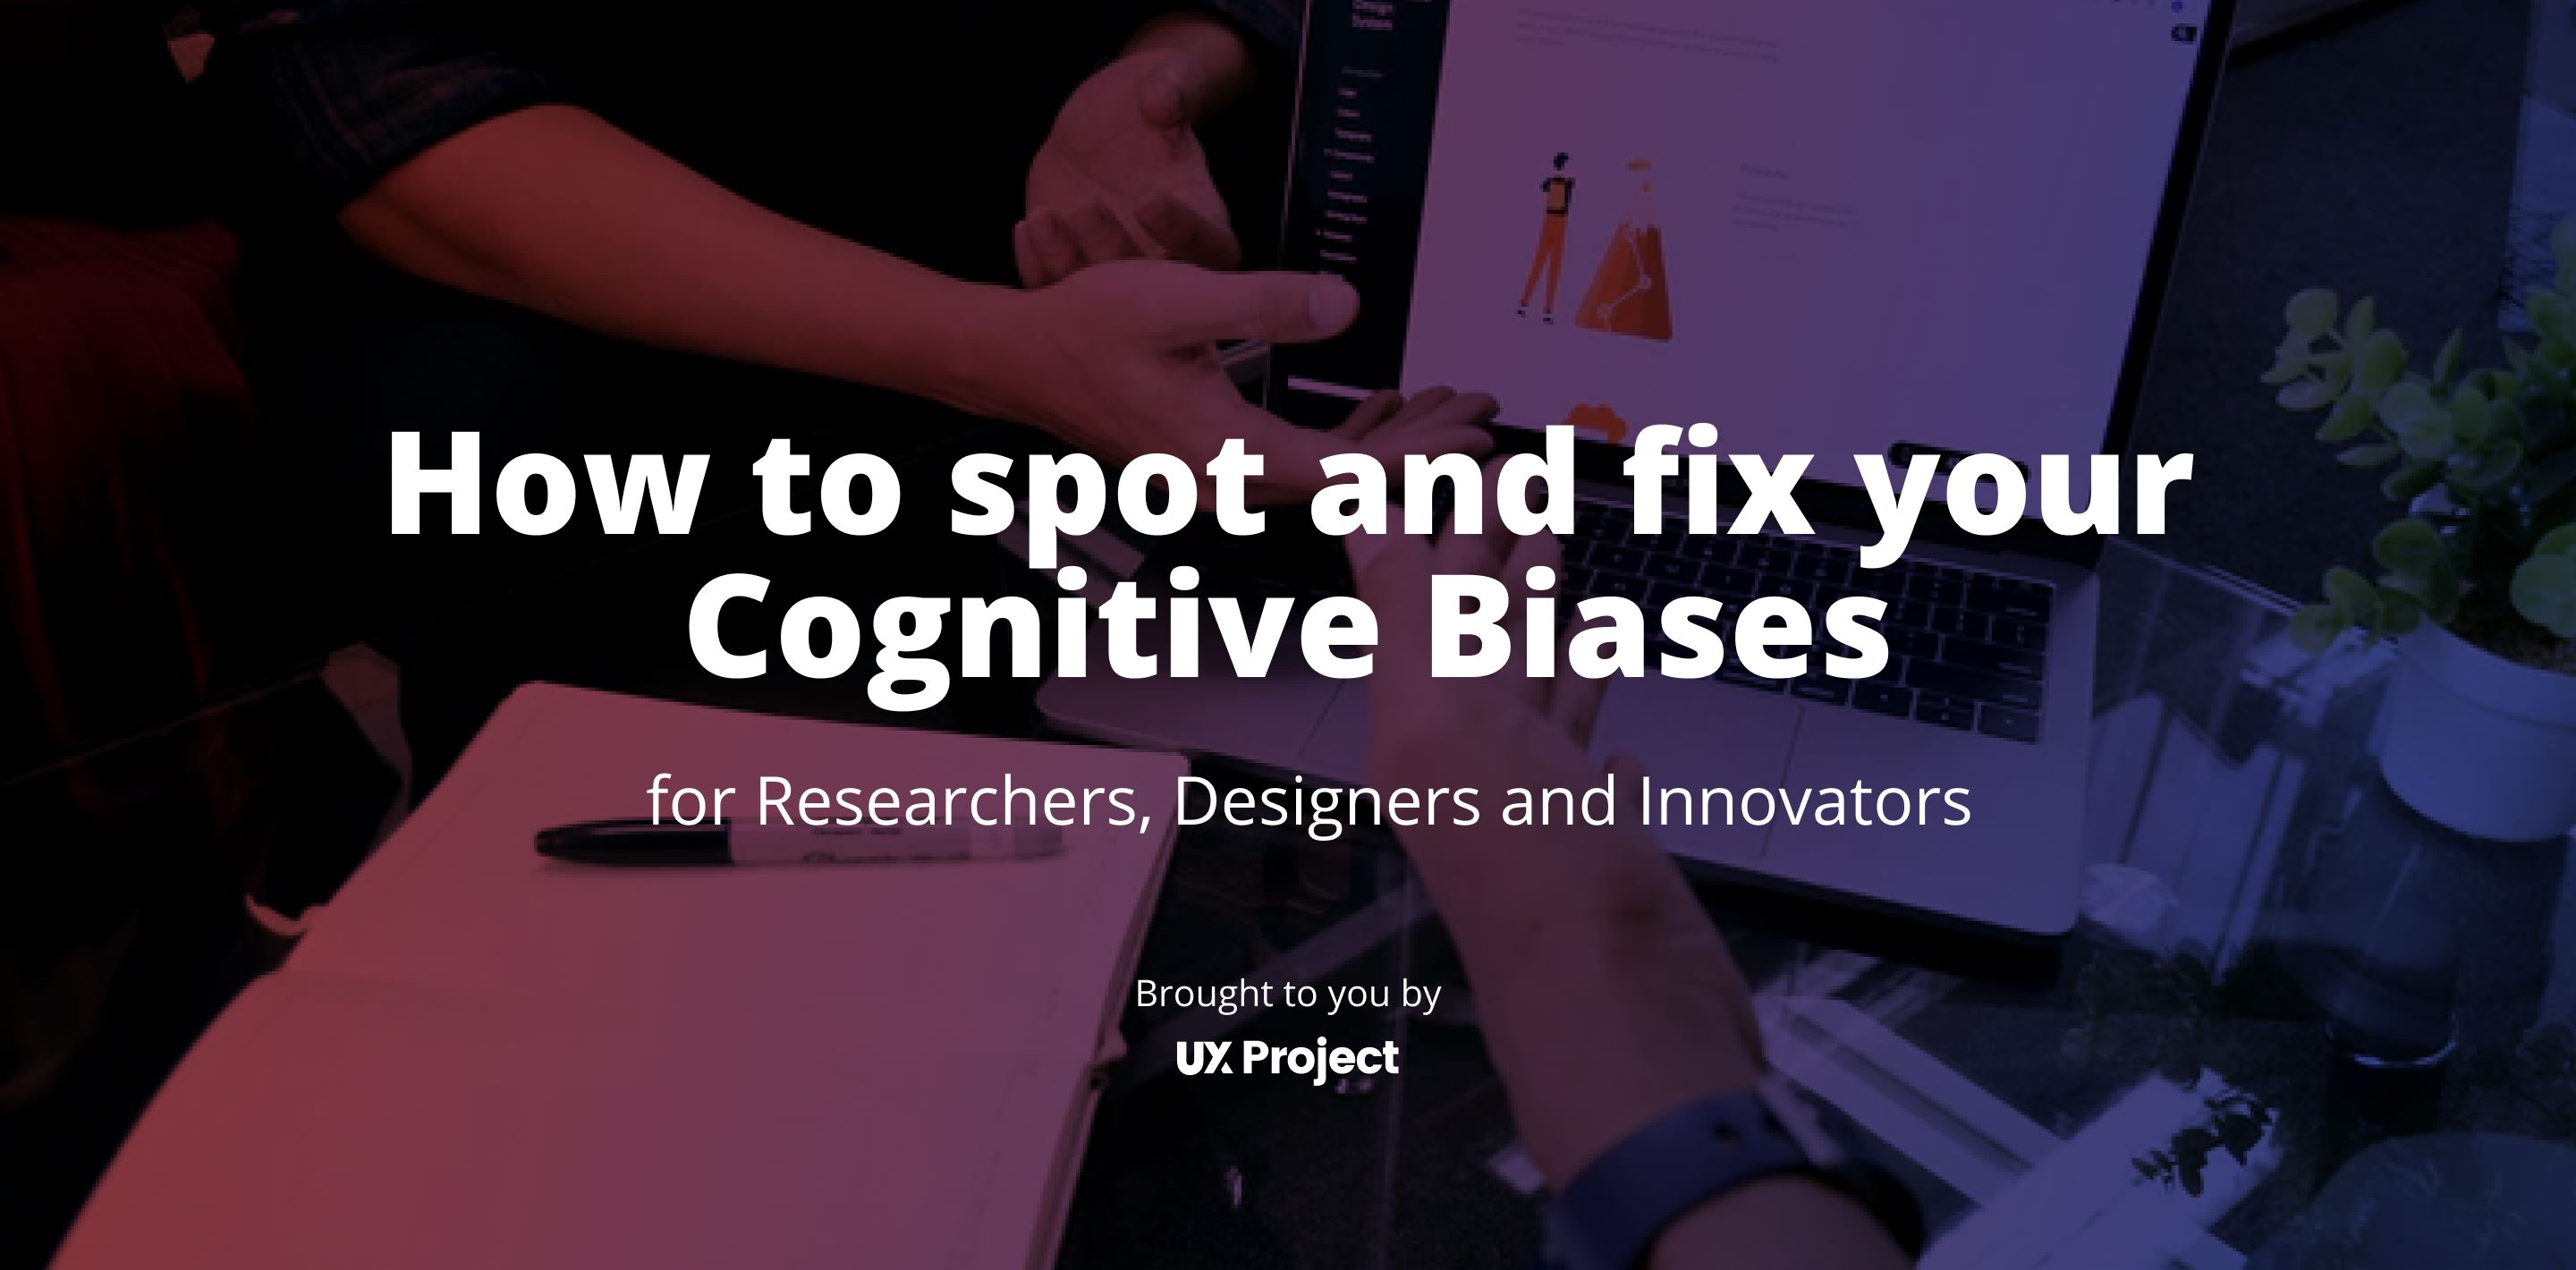 How to Spot and Fix Your Cognitive Biases